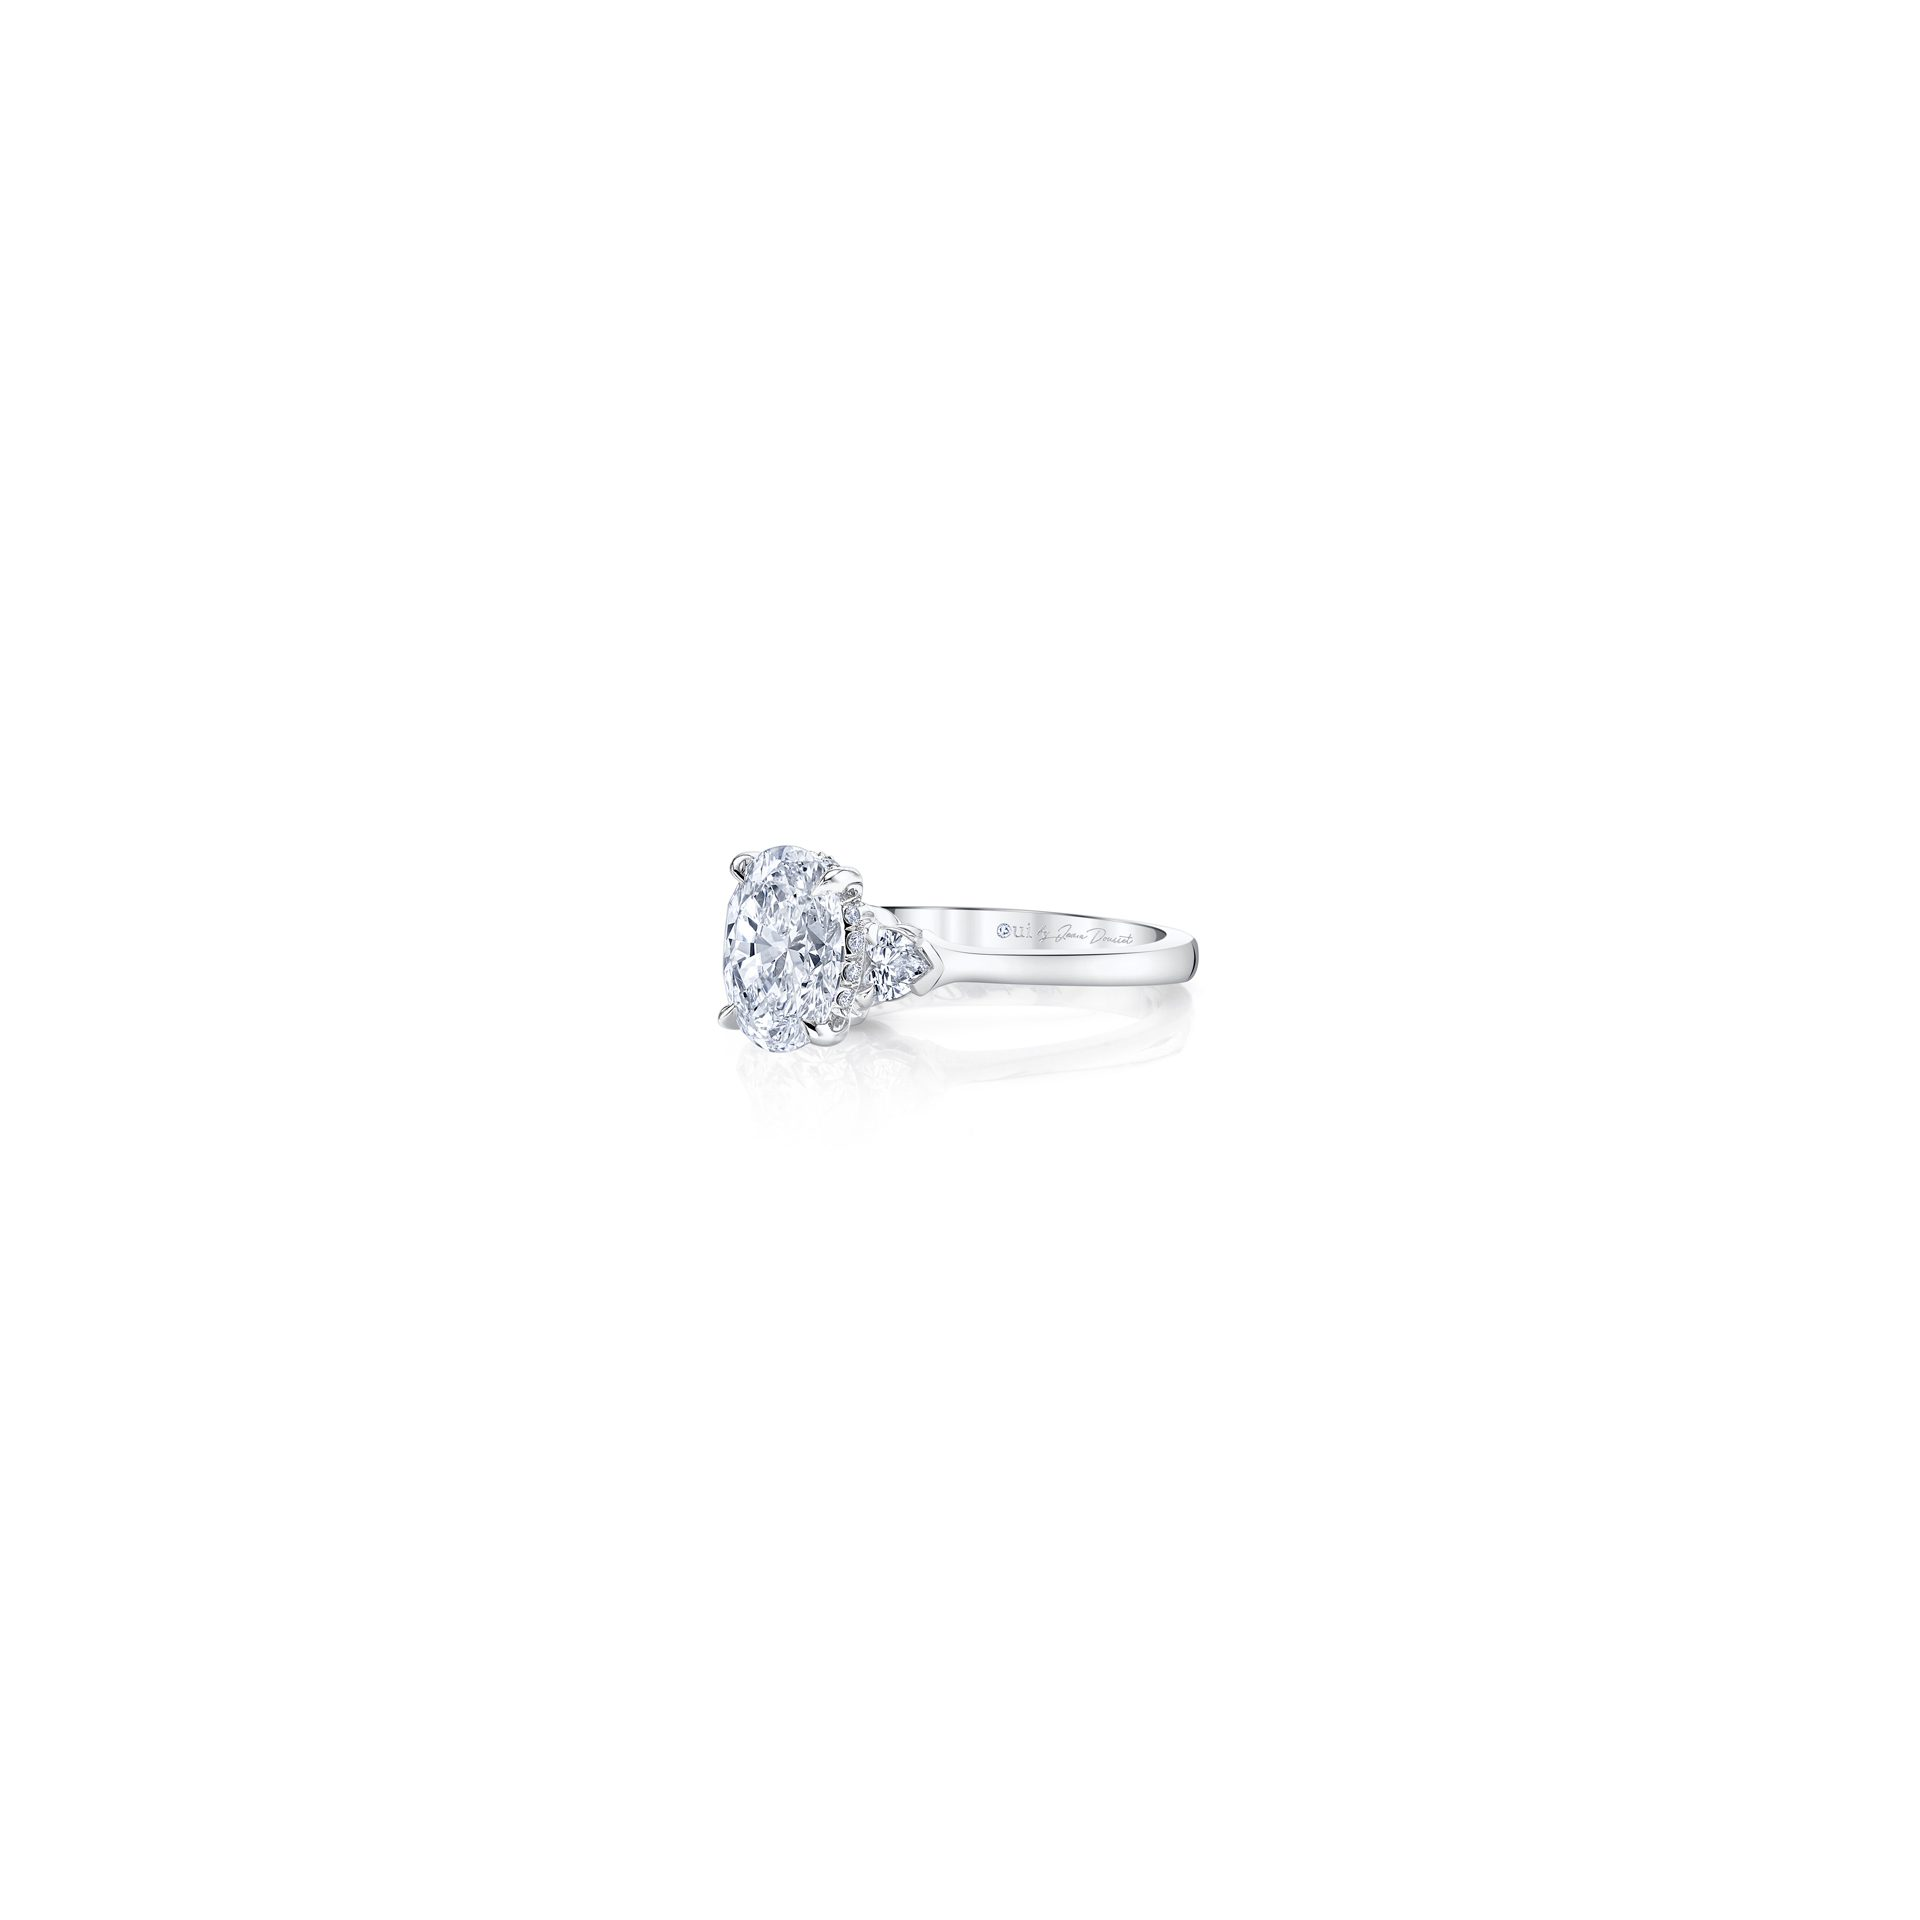 Claire Oval Three Stone Engagement Ring with heart-shaped diamond side stones in 18k White Gold Side View by Oui by Jean Dousset